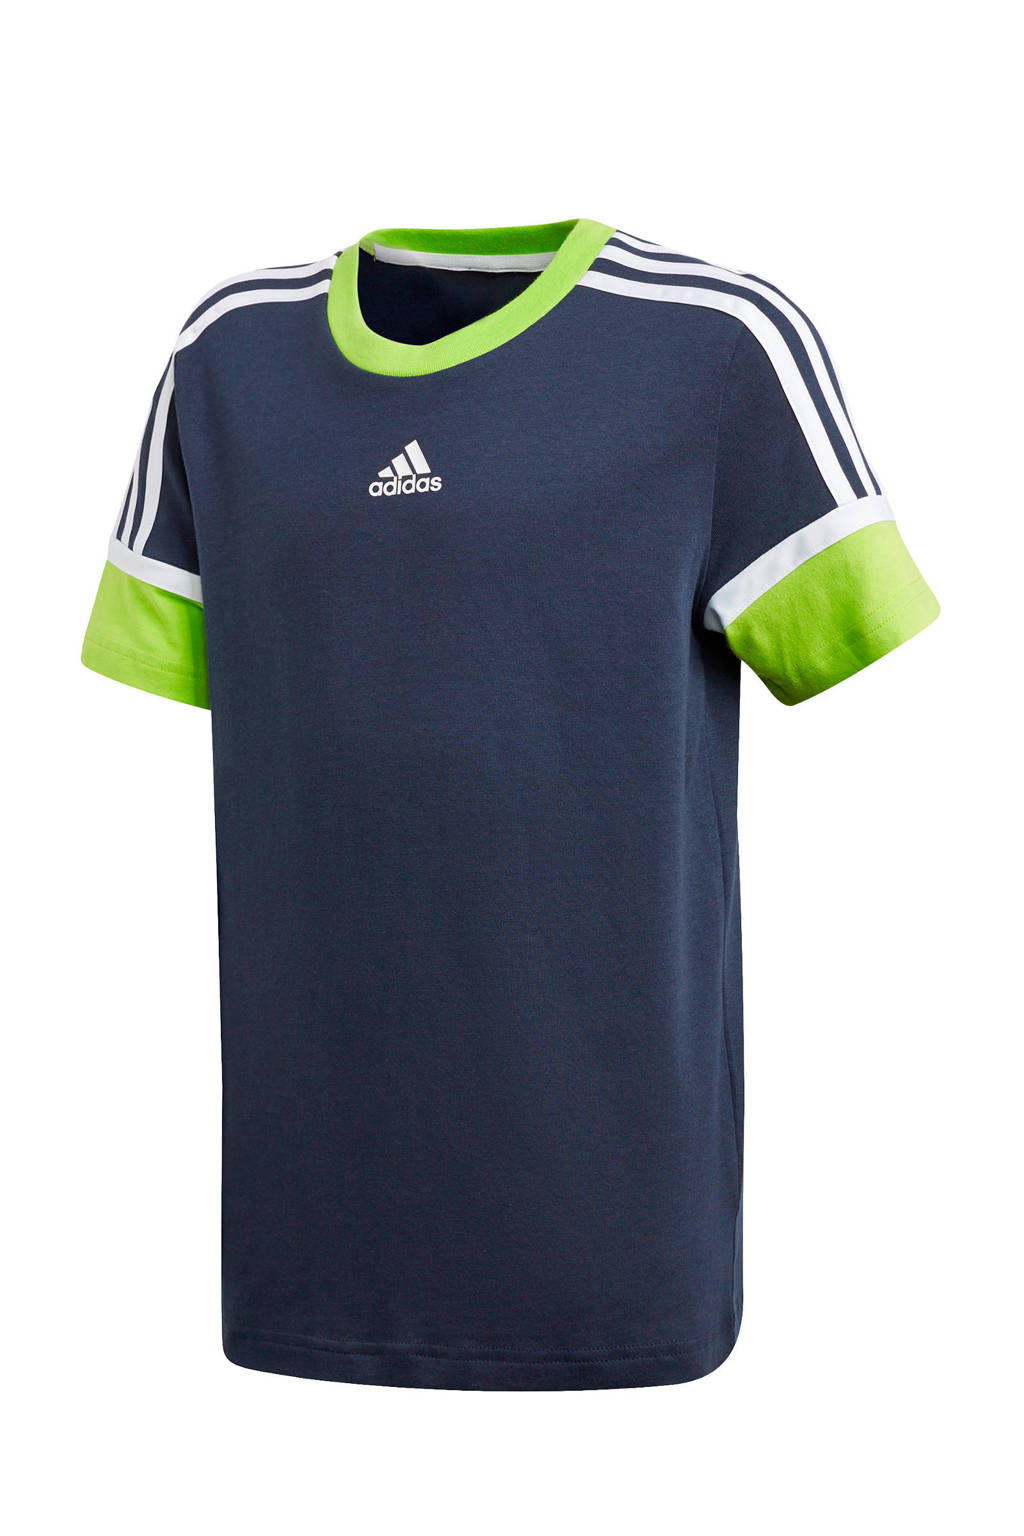 adidas Performance   sport T-shirt donkerblauw/lime, Donkerblauw/lime